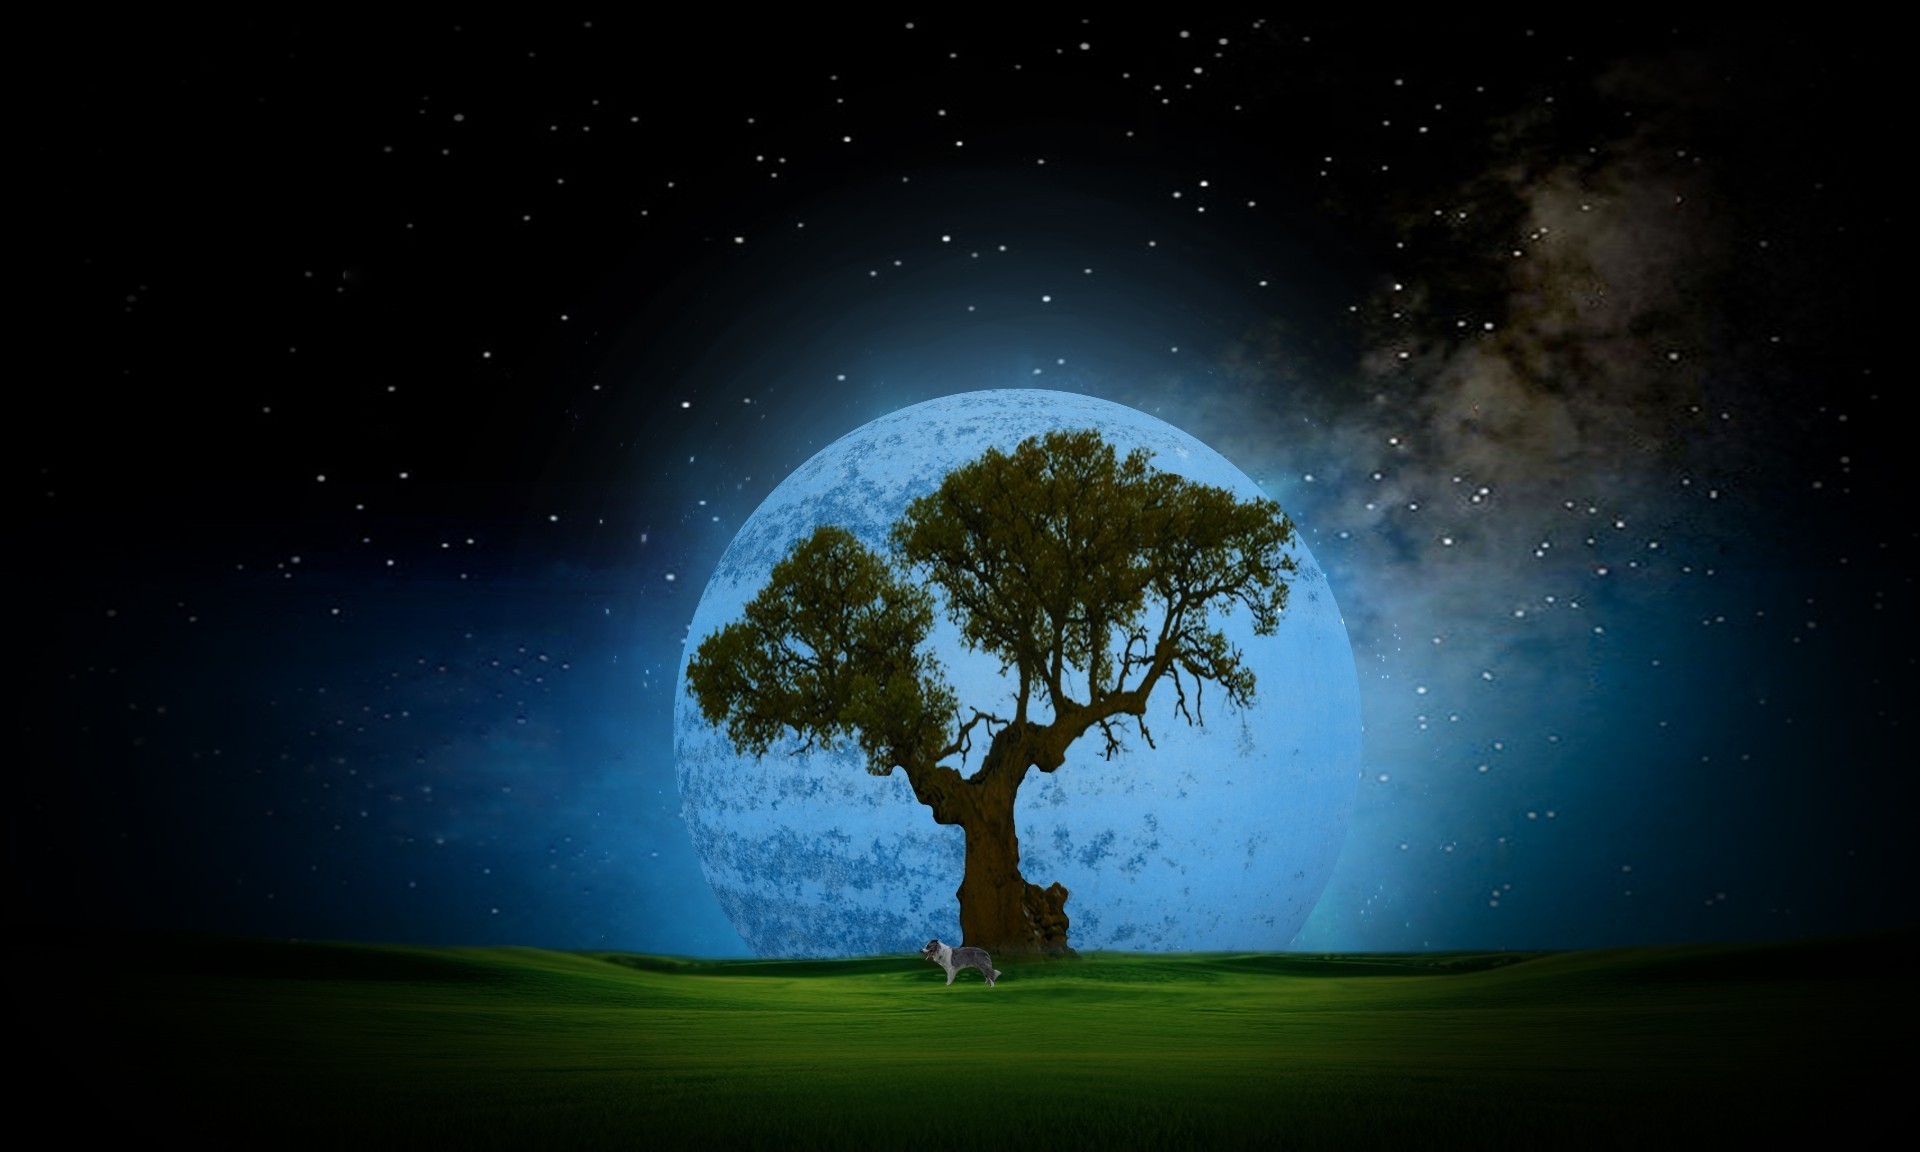 Moonlit night, spreading tree and a dog under it